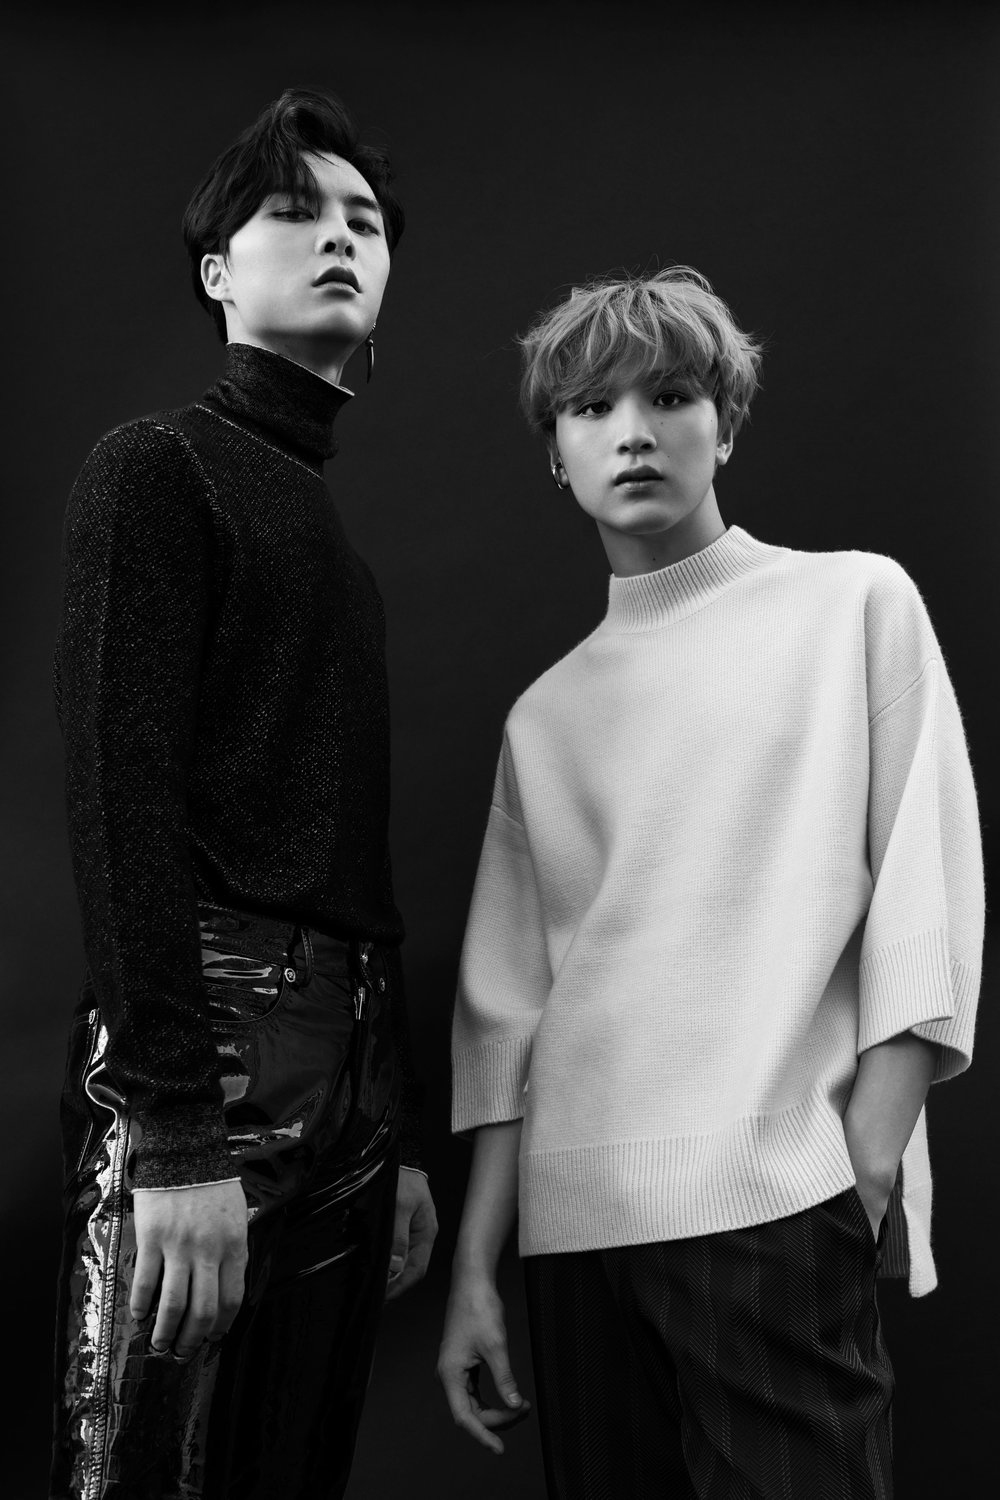 Left to right: Johnny wears   BOTTEGA VENETA     sweater,   VERSACE     pants, and his own earring. Haechan wears   BALDWIN     sweater and pants and   PORTRAIT REPORT     earring and   HERMÈS     pants.